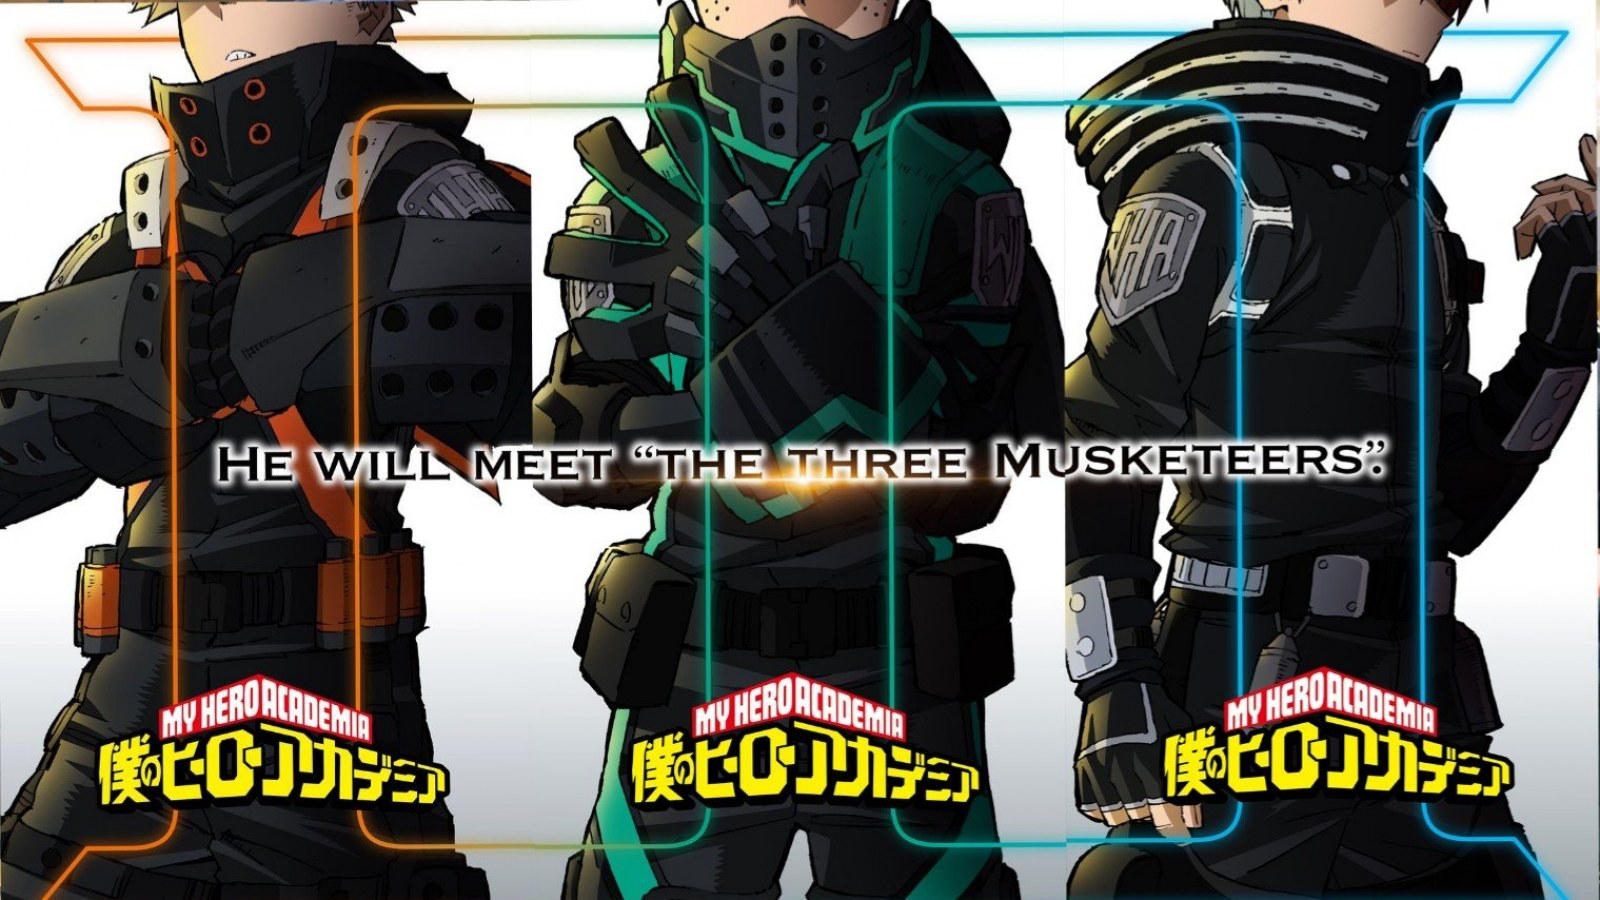 Third 'My Hero Academia' Animated Movie Teased With a Nod to 'The Three  Musketeers'